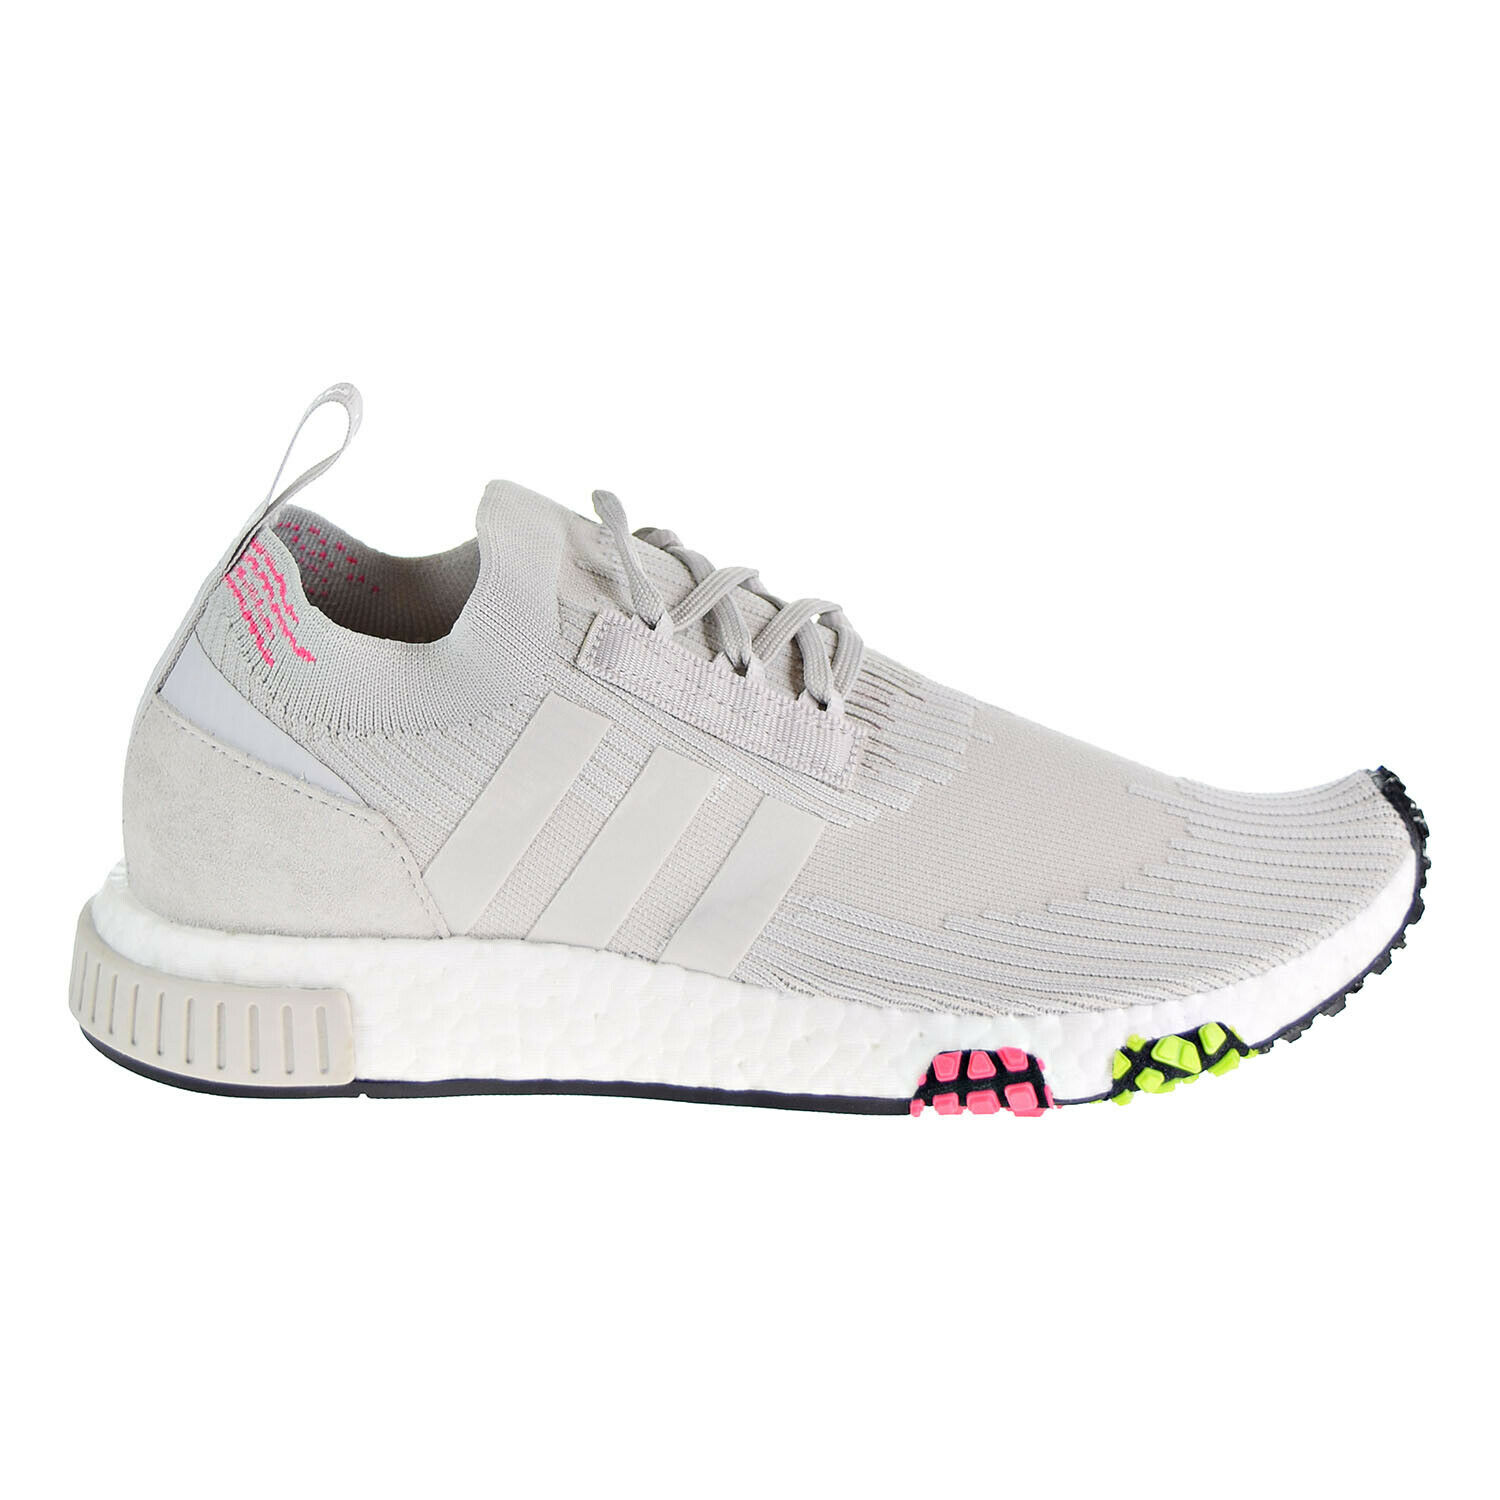 Adidas NMD_Racer Primeknit Men's shoes Grey One Solar Pink CQ2443